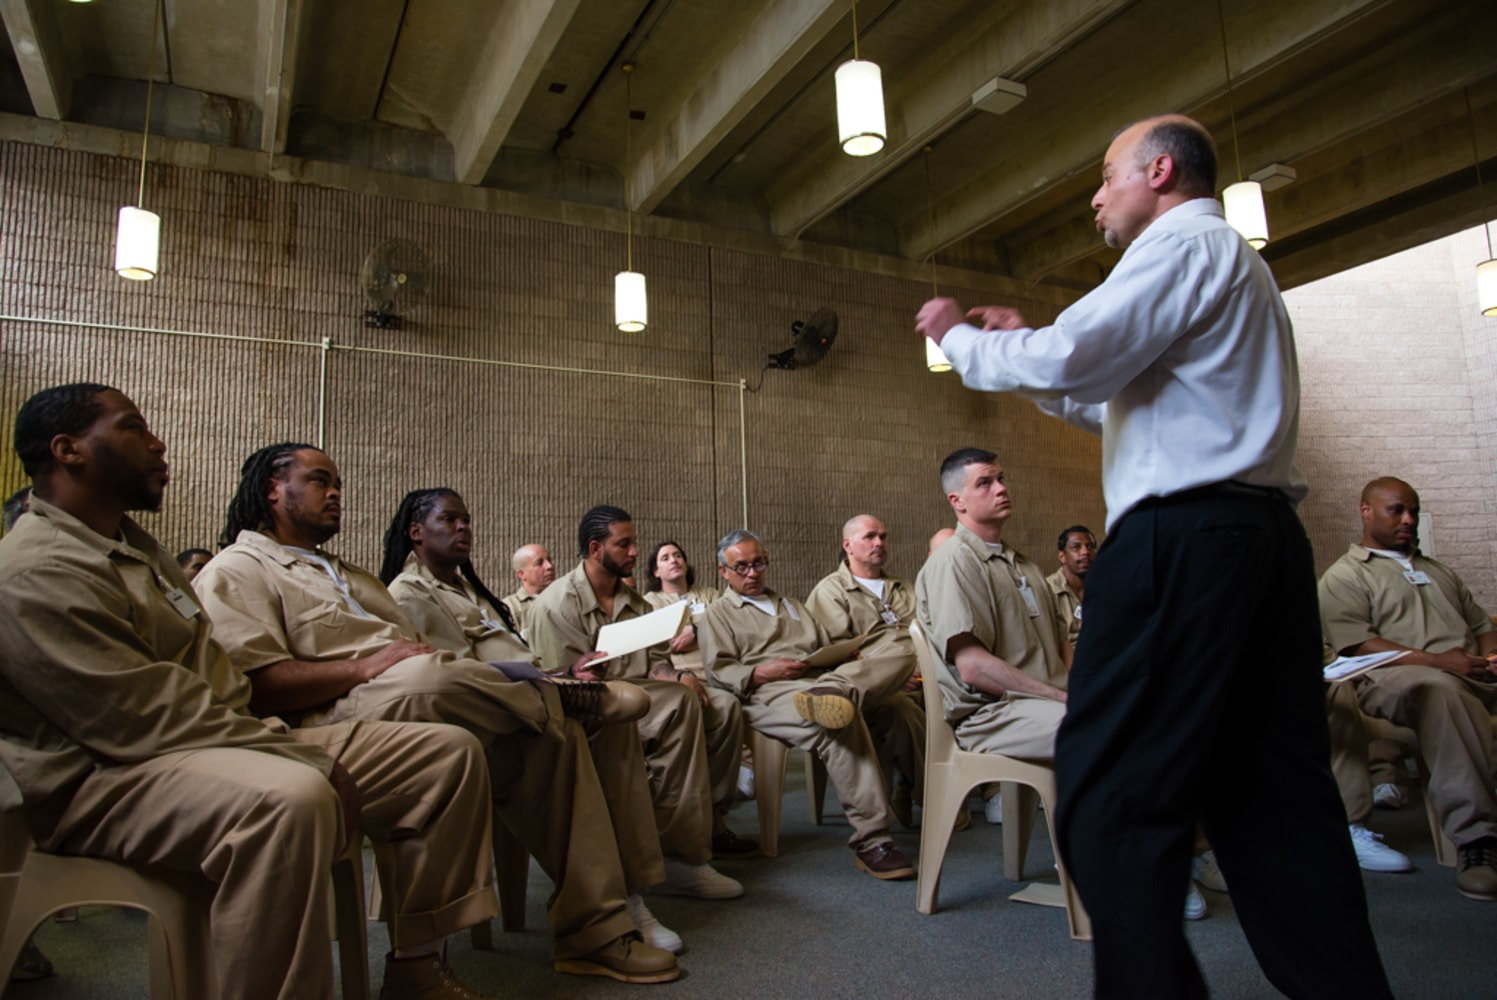 overcrowding in americas prison system analysis